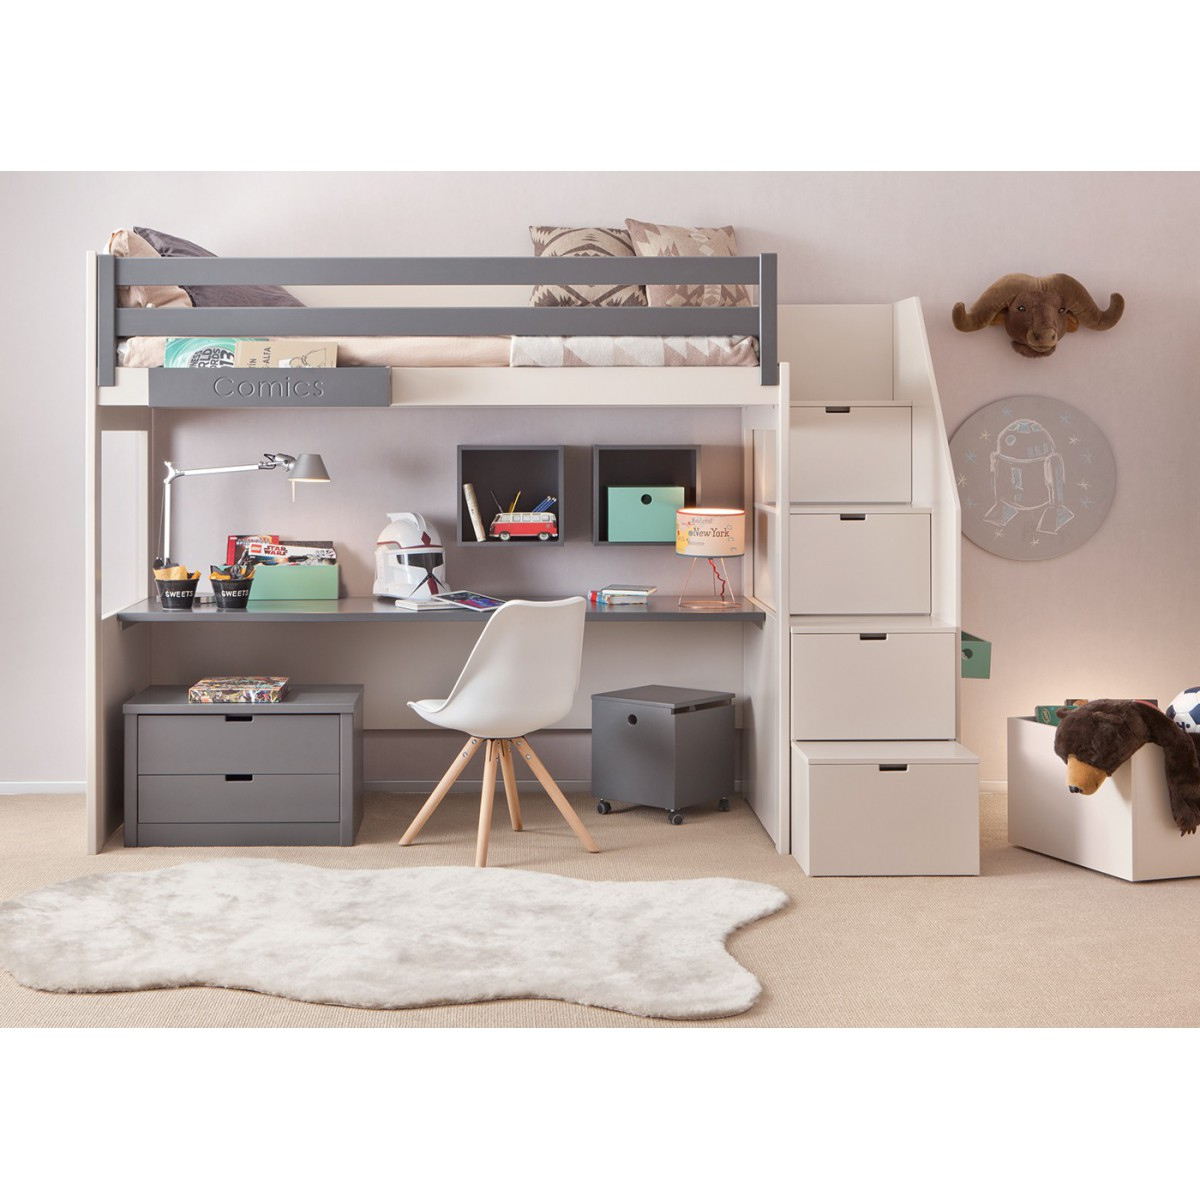 Chambre design sp cial ados juniors sign - Chambre gain de place ...